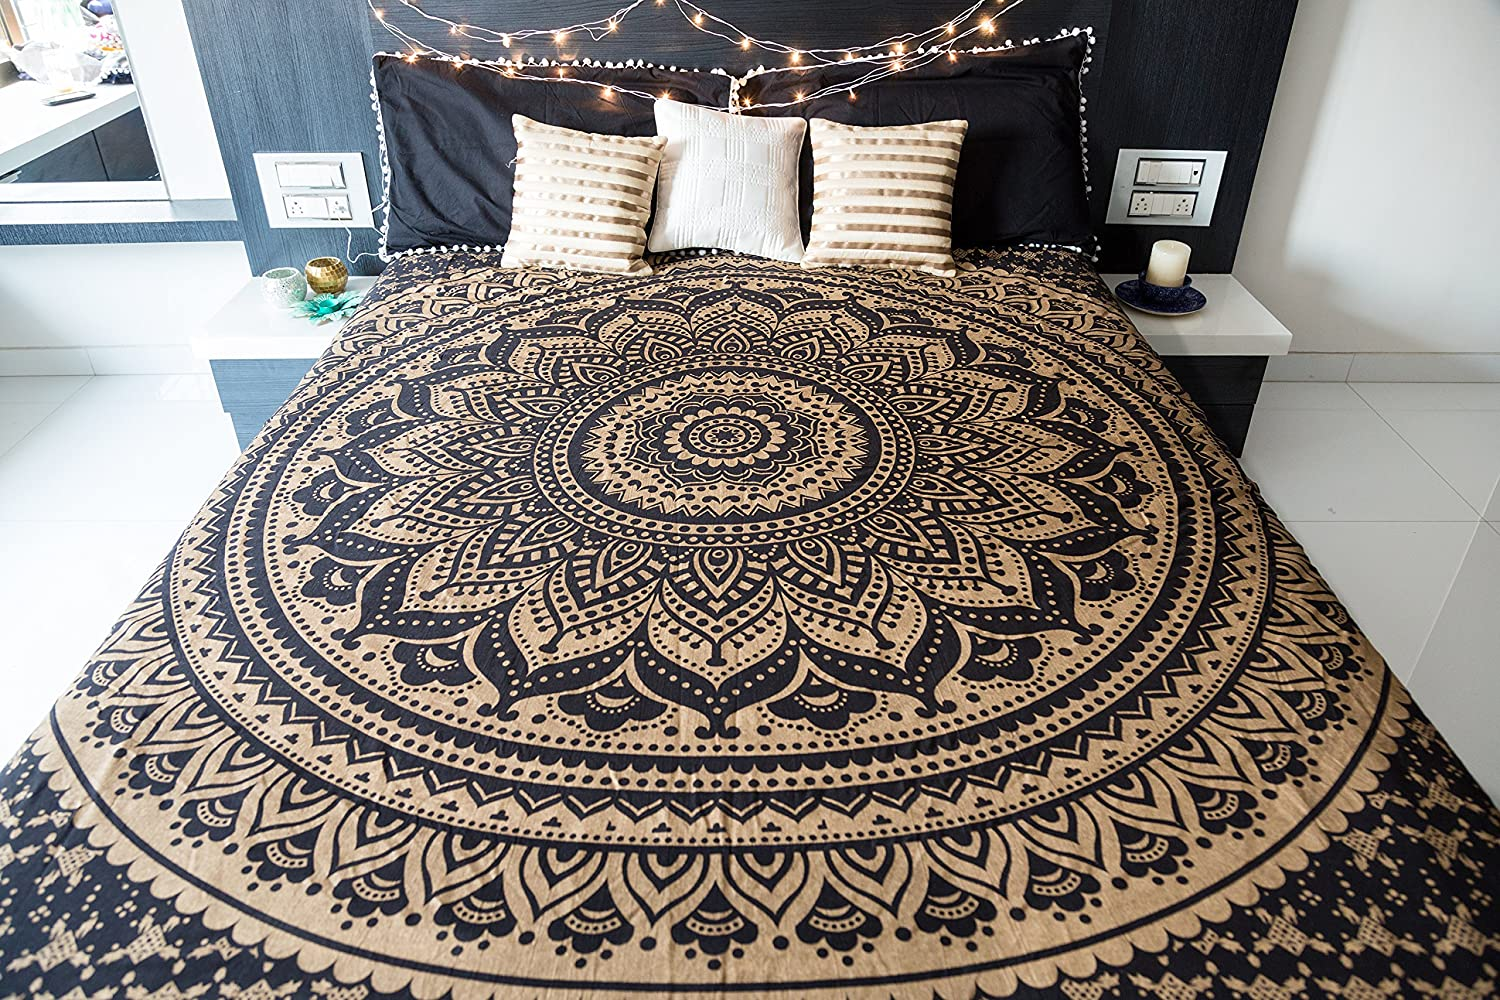 Bohemian Mandala Tapestry Hippie Wall Hanging Indian Bedcover Set Silk Star Oringina 200x200 Ombre Bedding Bedspread For Bedroom College Dorm Room Art Decor Or Home